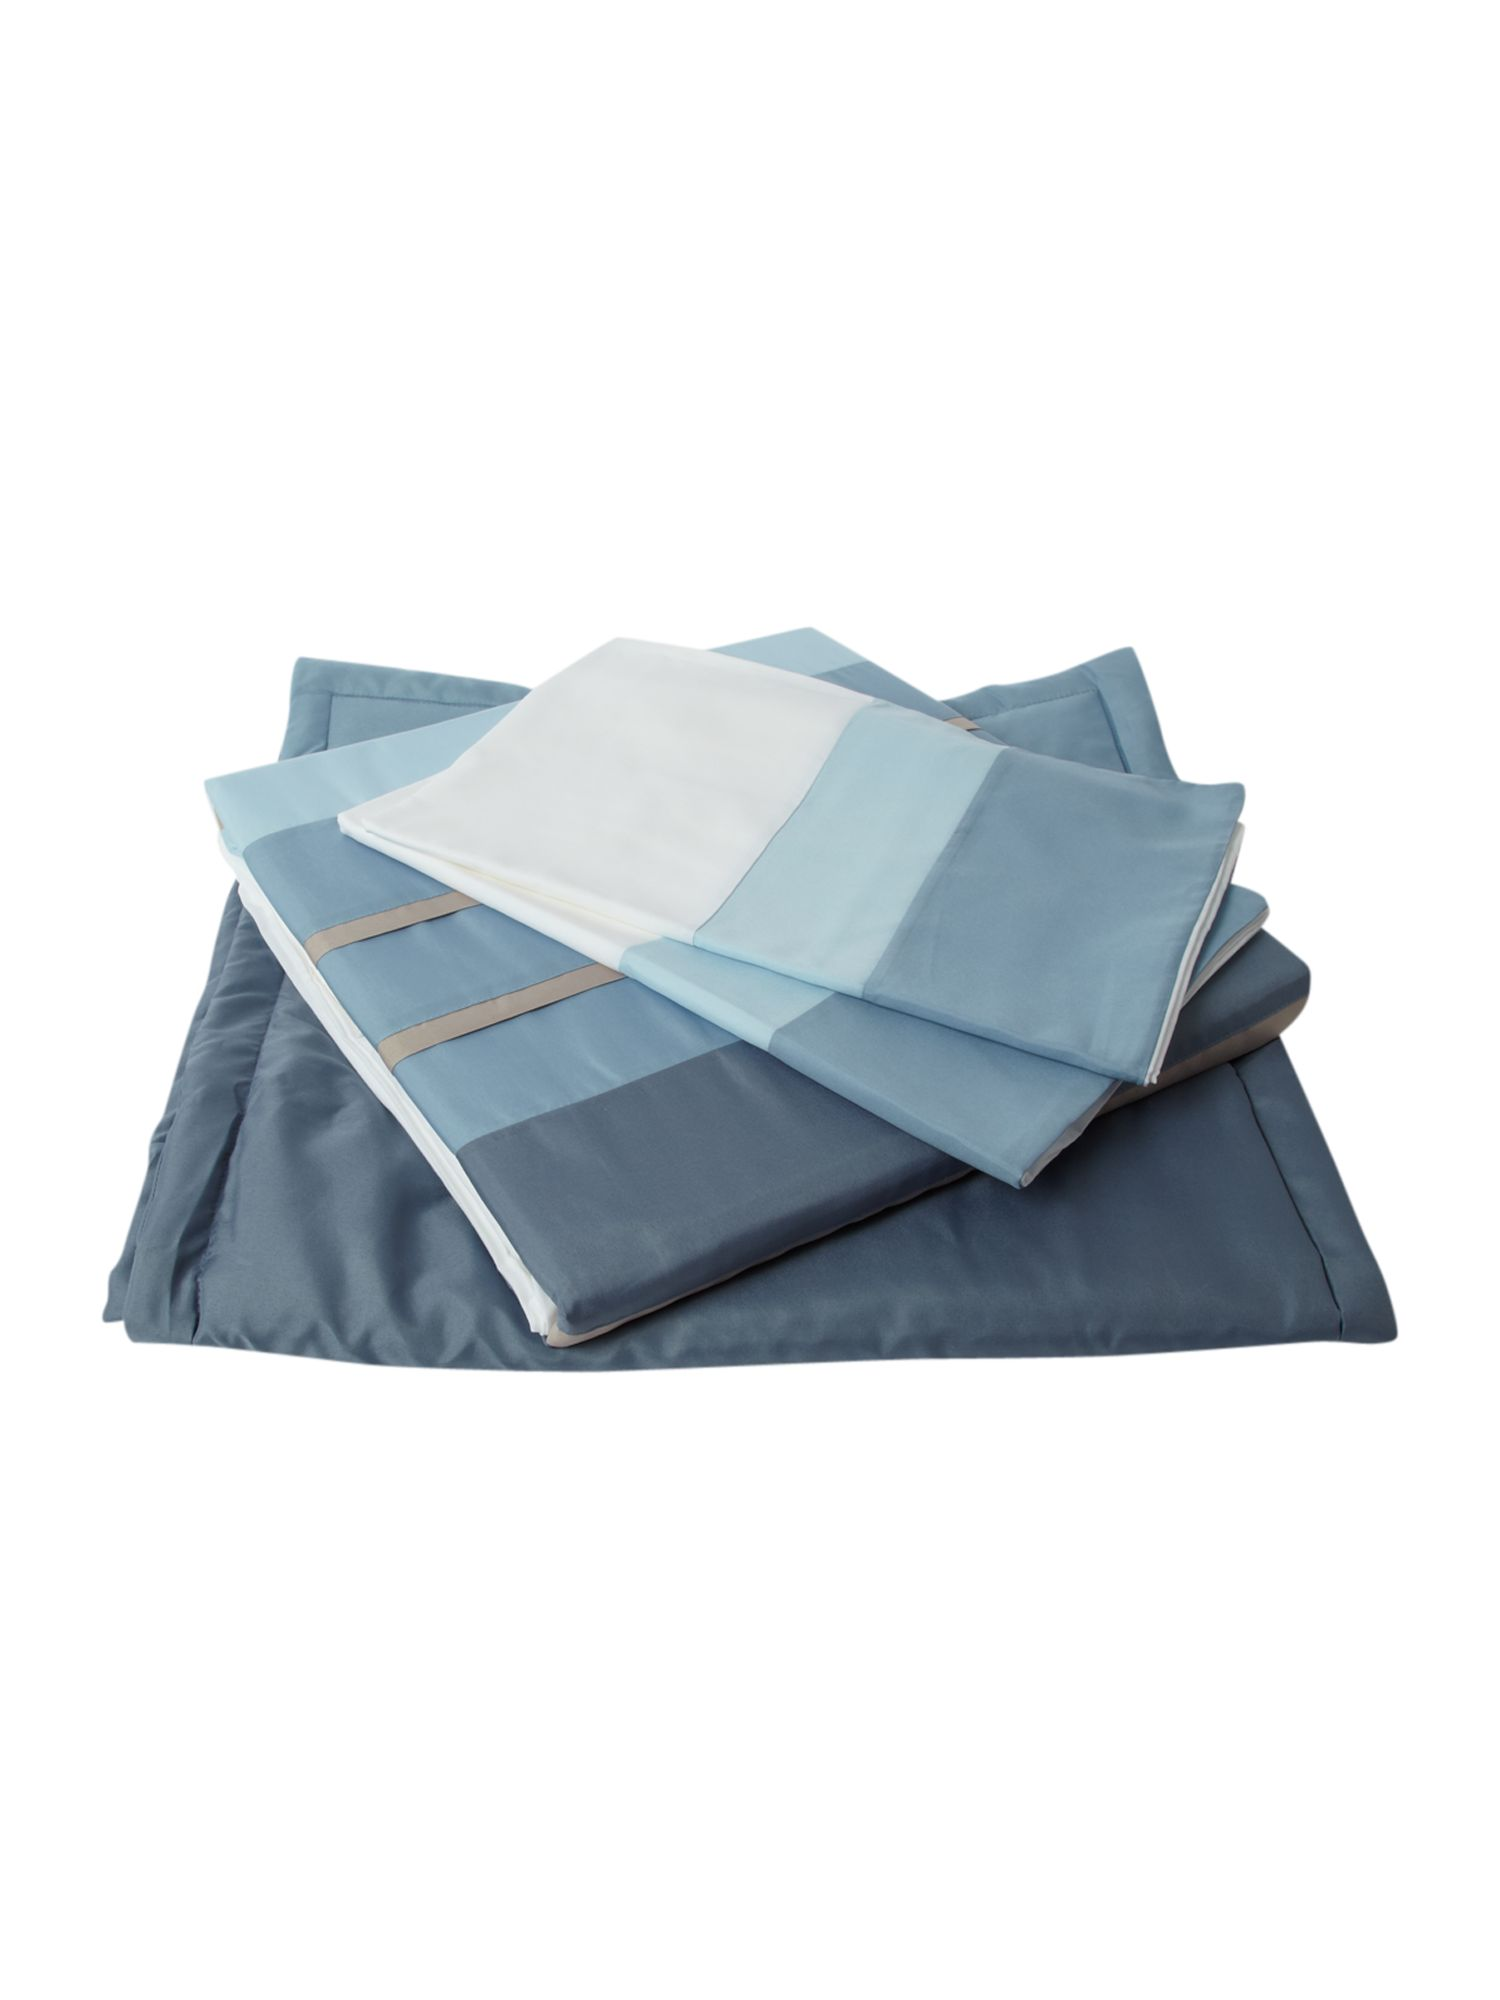 Tri band bed in a bag king duvet cover blue